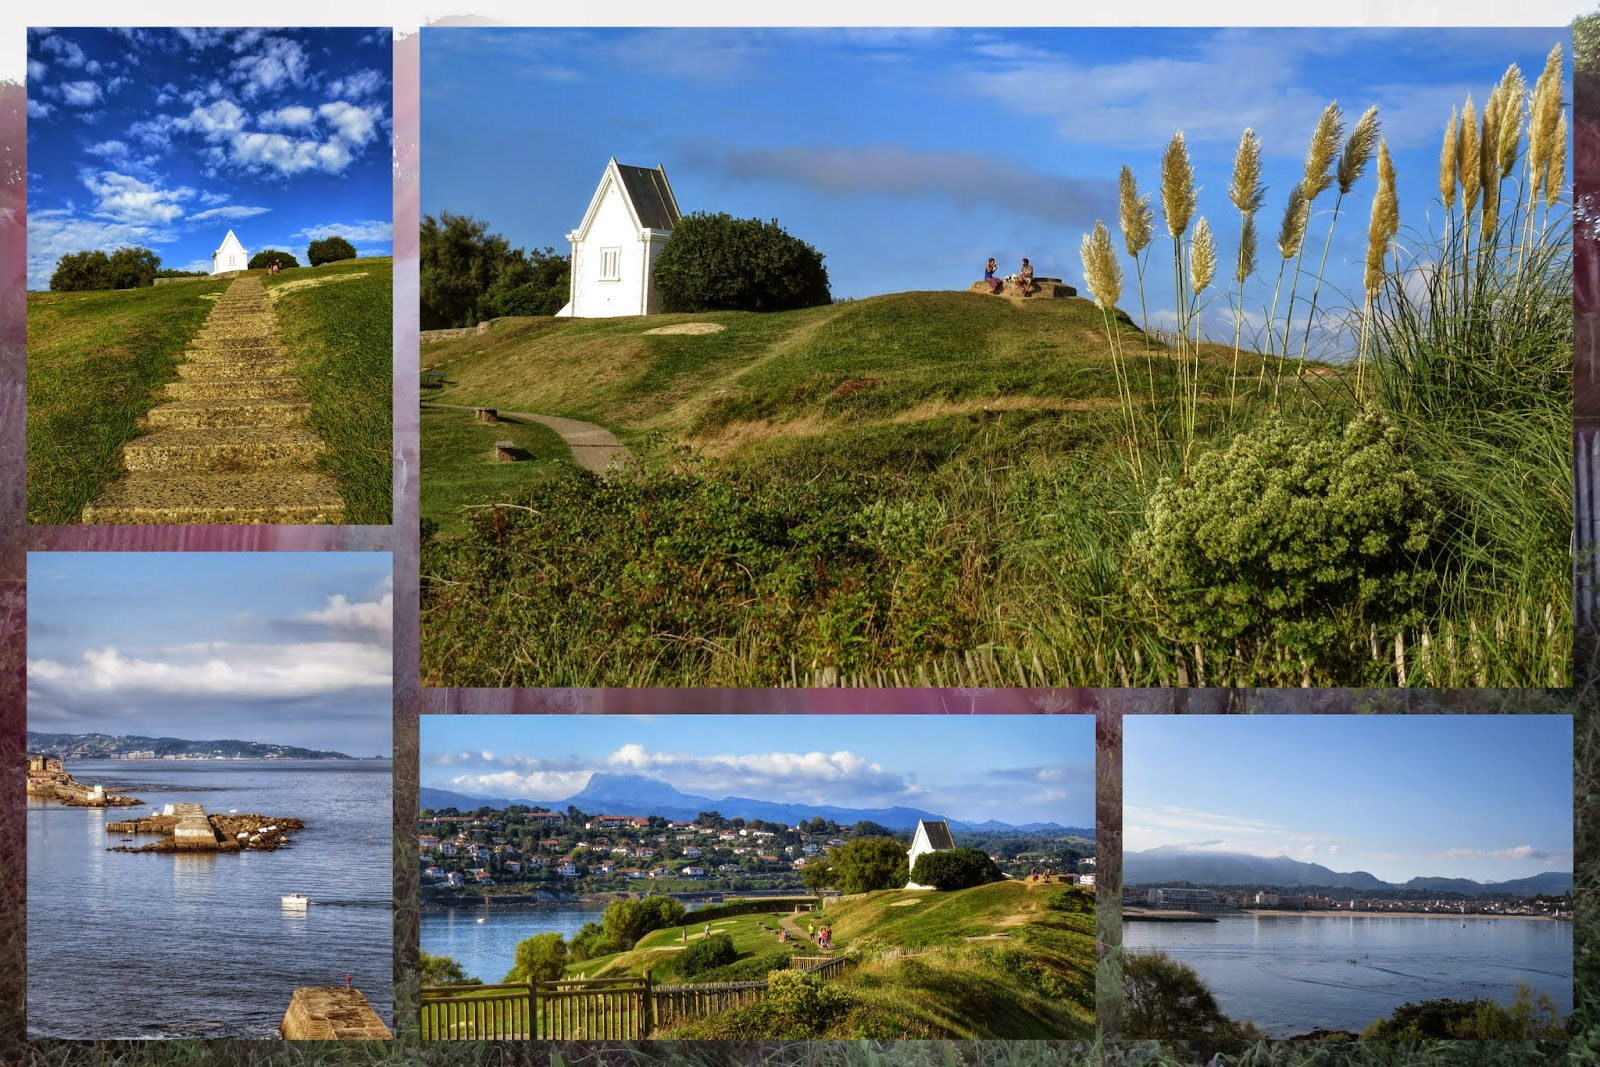 A Weekend in French Basque Country - Lighthouse - St. Jean de Luz